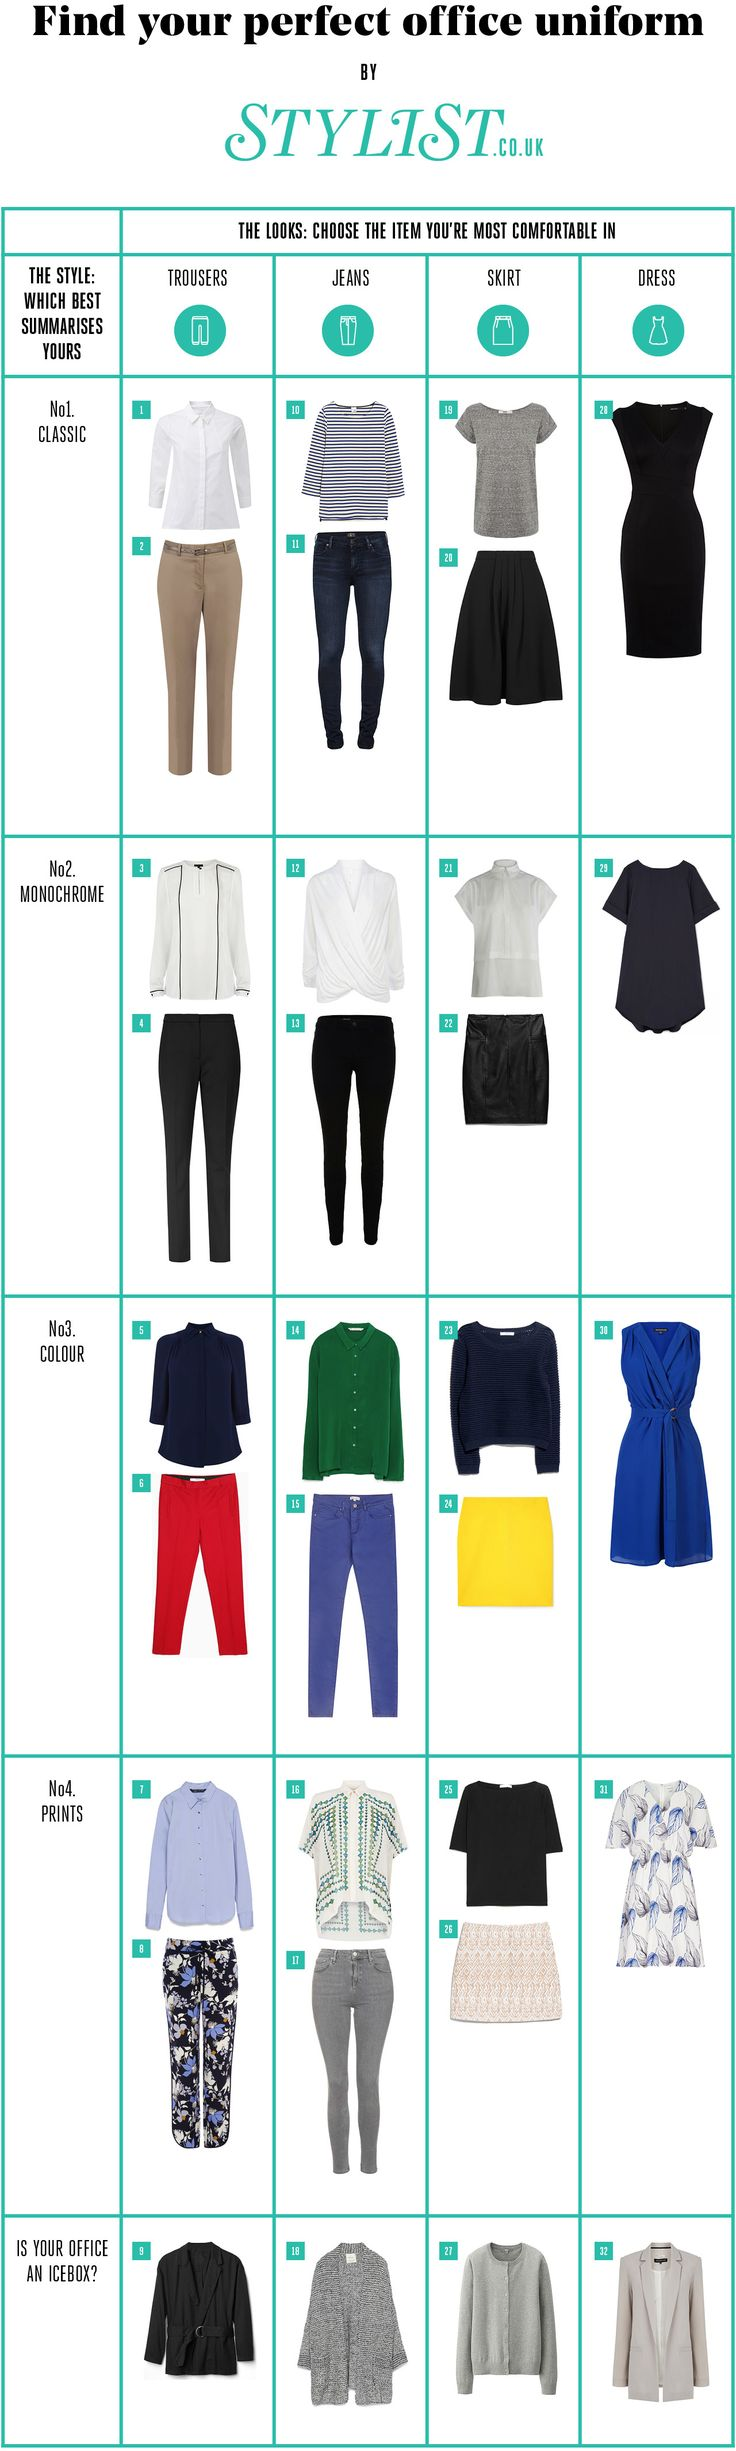 The uniform challenge; We wore the same thing to work every day for a month. Here's what we learnt…